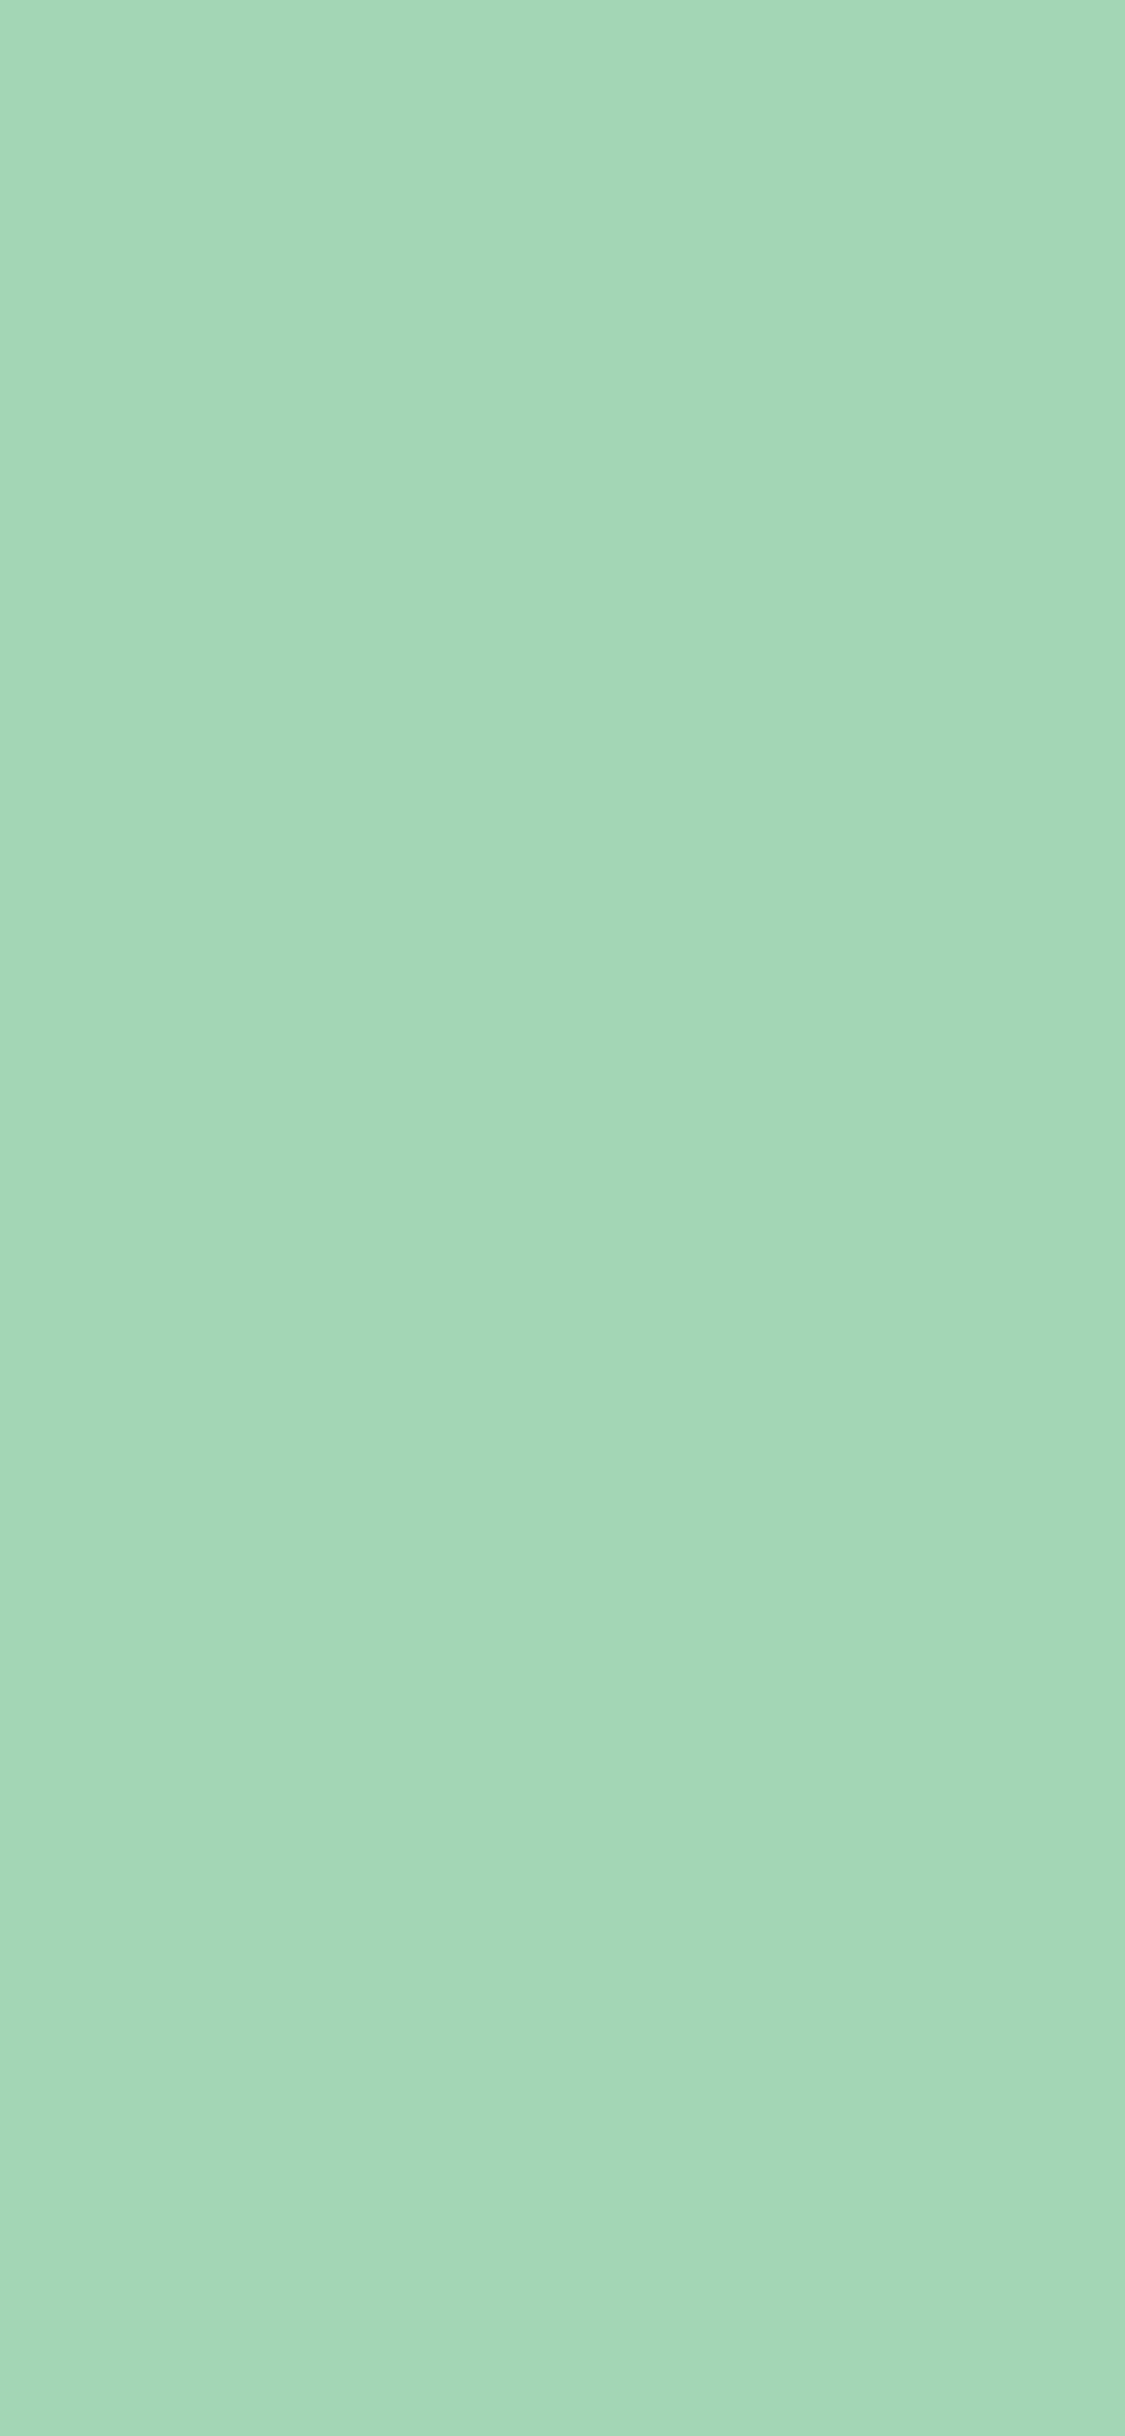 1125x2436 Turquoise Green Solid Color Background